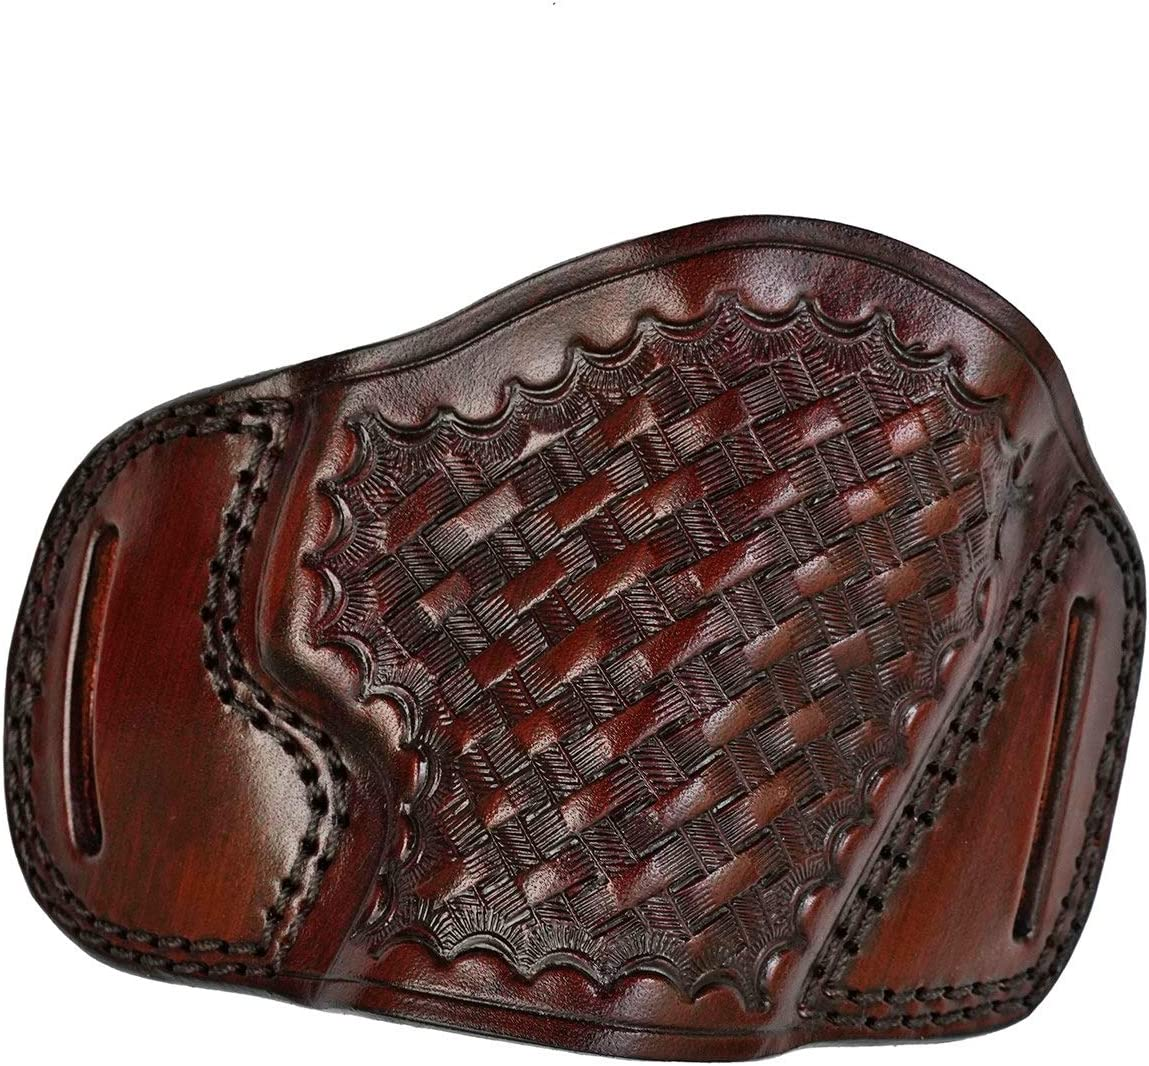 OWB Leather Holster for Canik TP9 Now on sale online shopping Weave Basket Series - Genuin